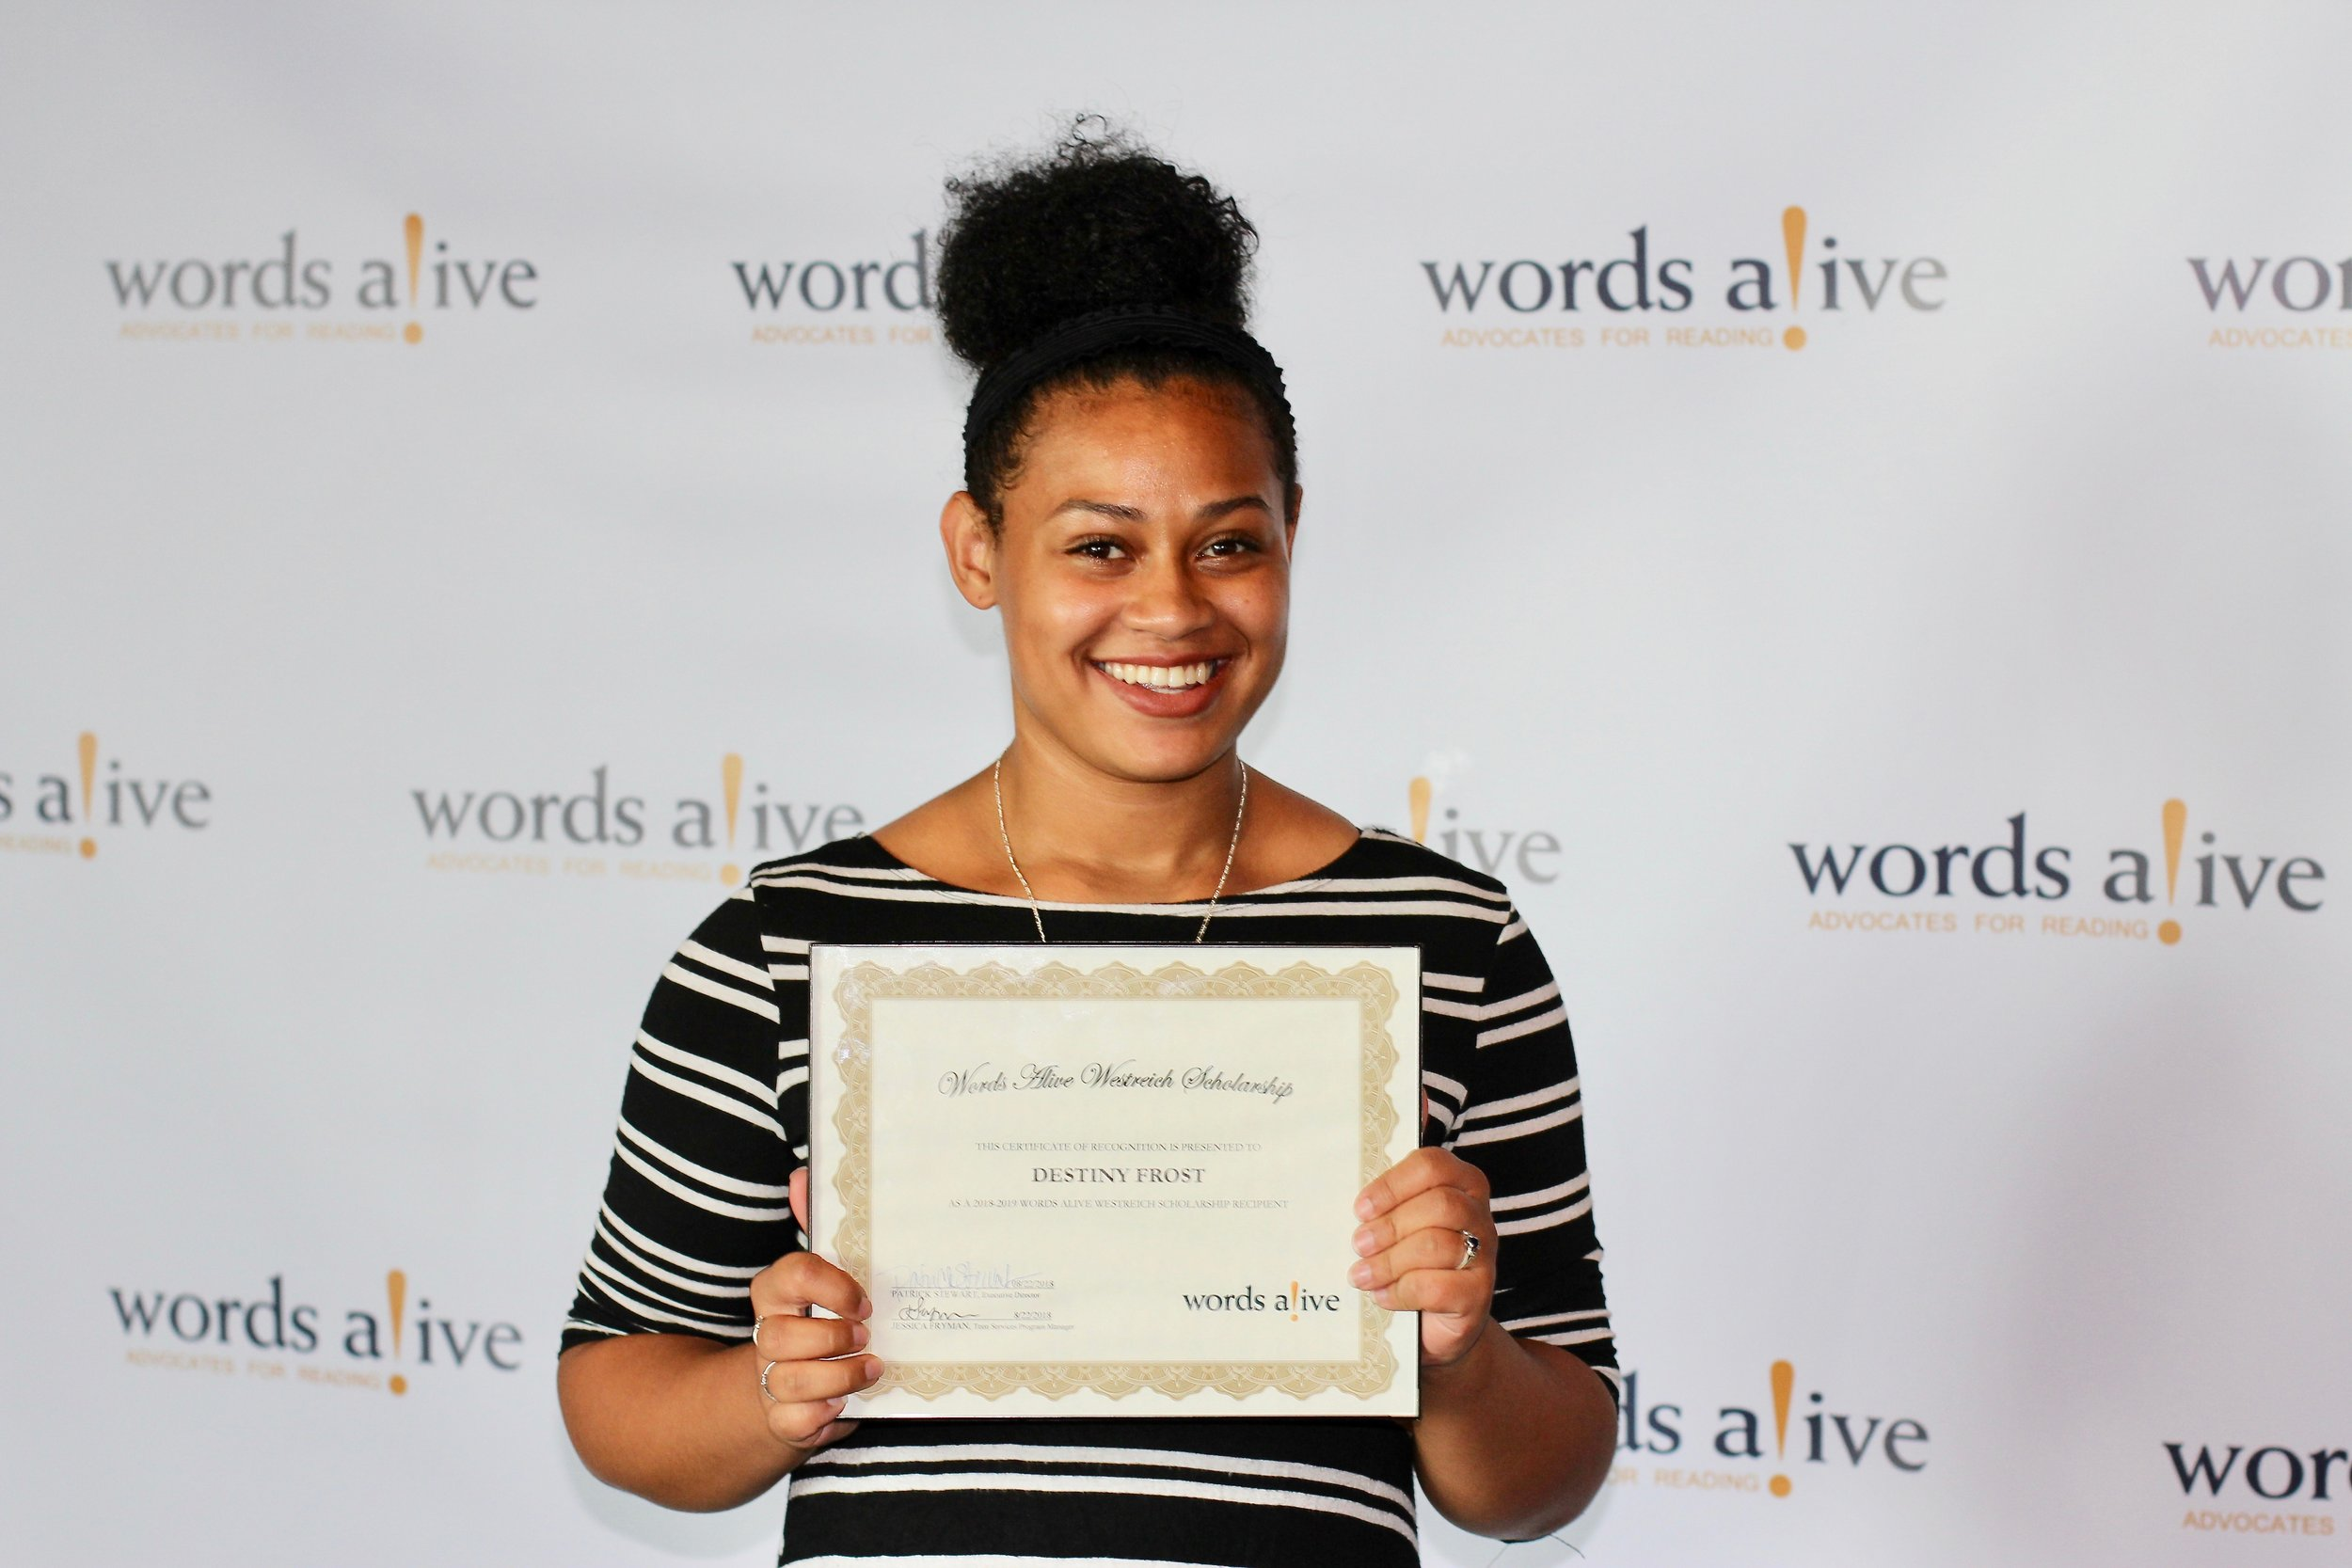 An image of Destiny holding up her award at the 2018 Words Alive Westreich Scholarship Award Ceremony.